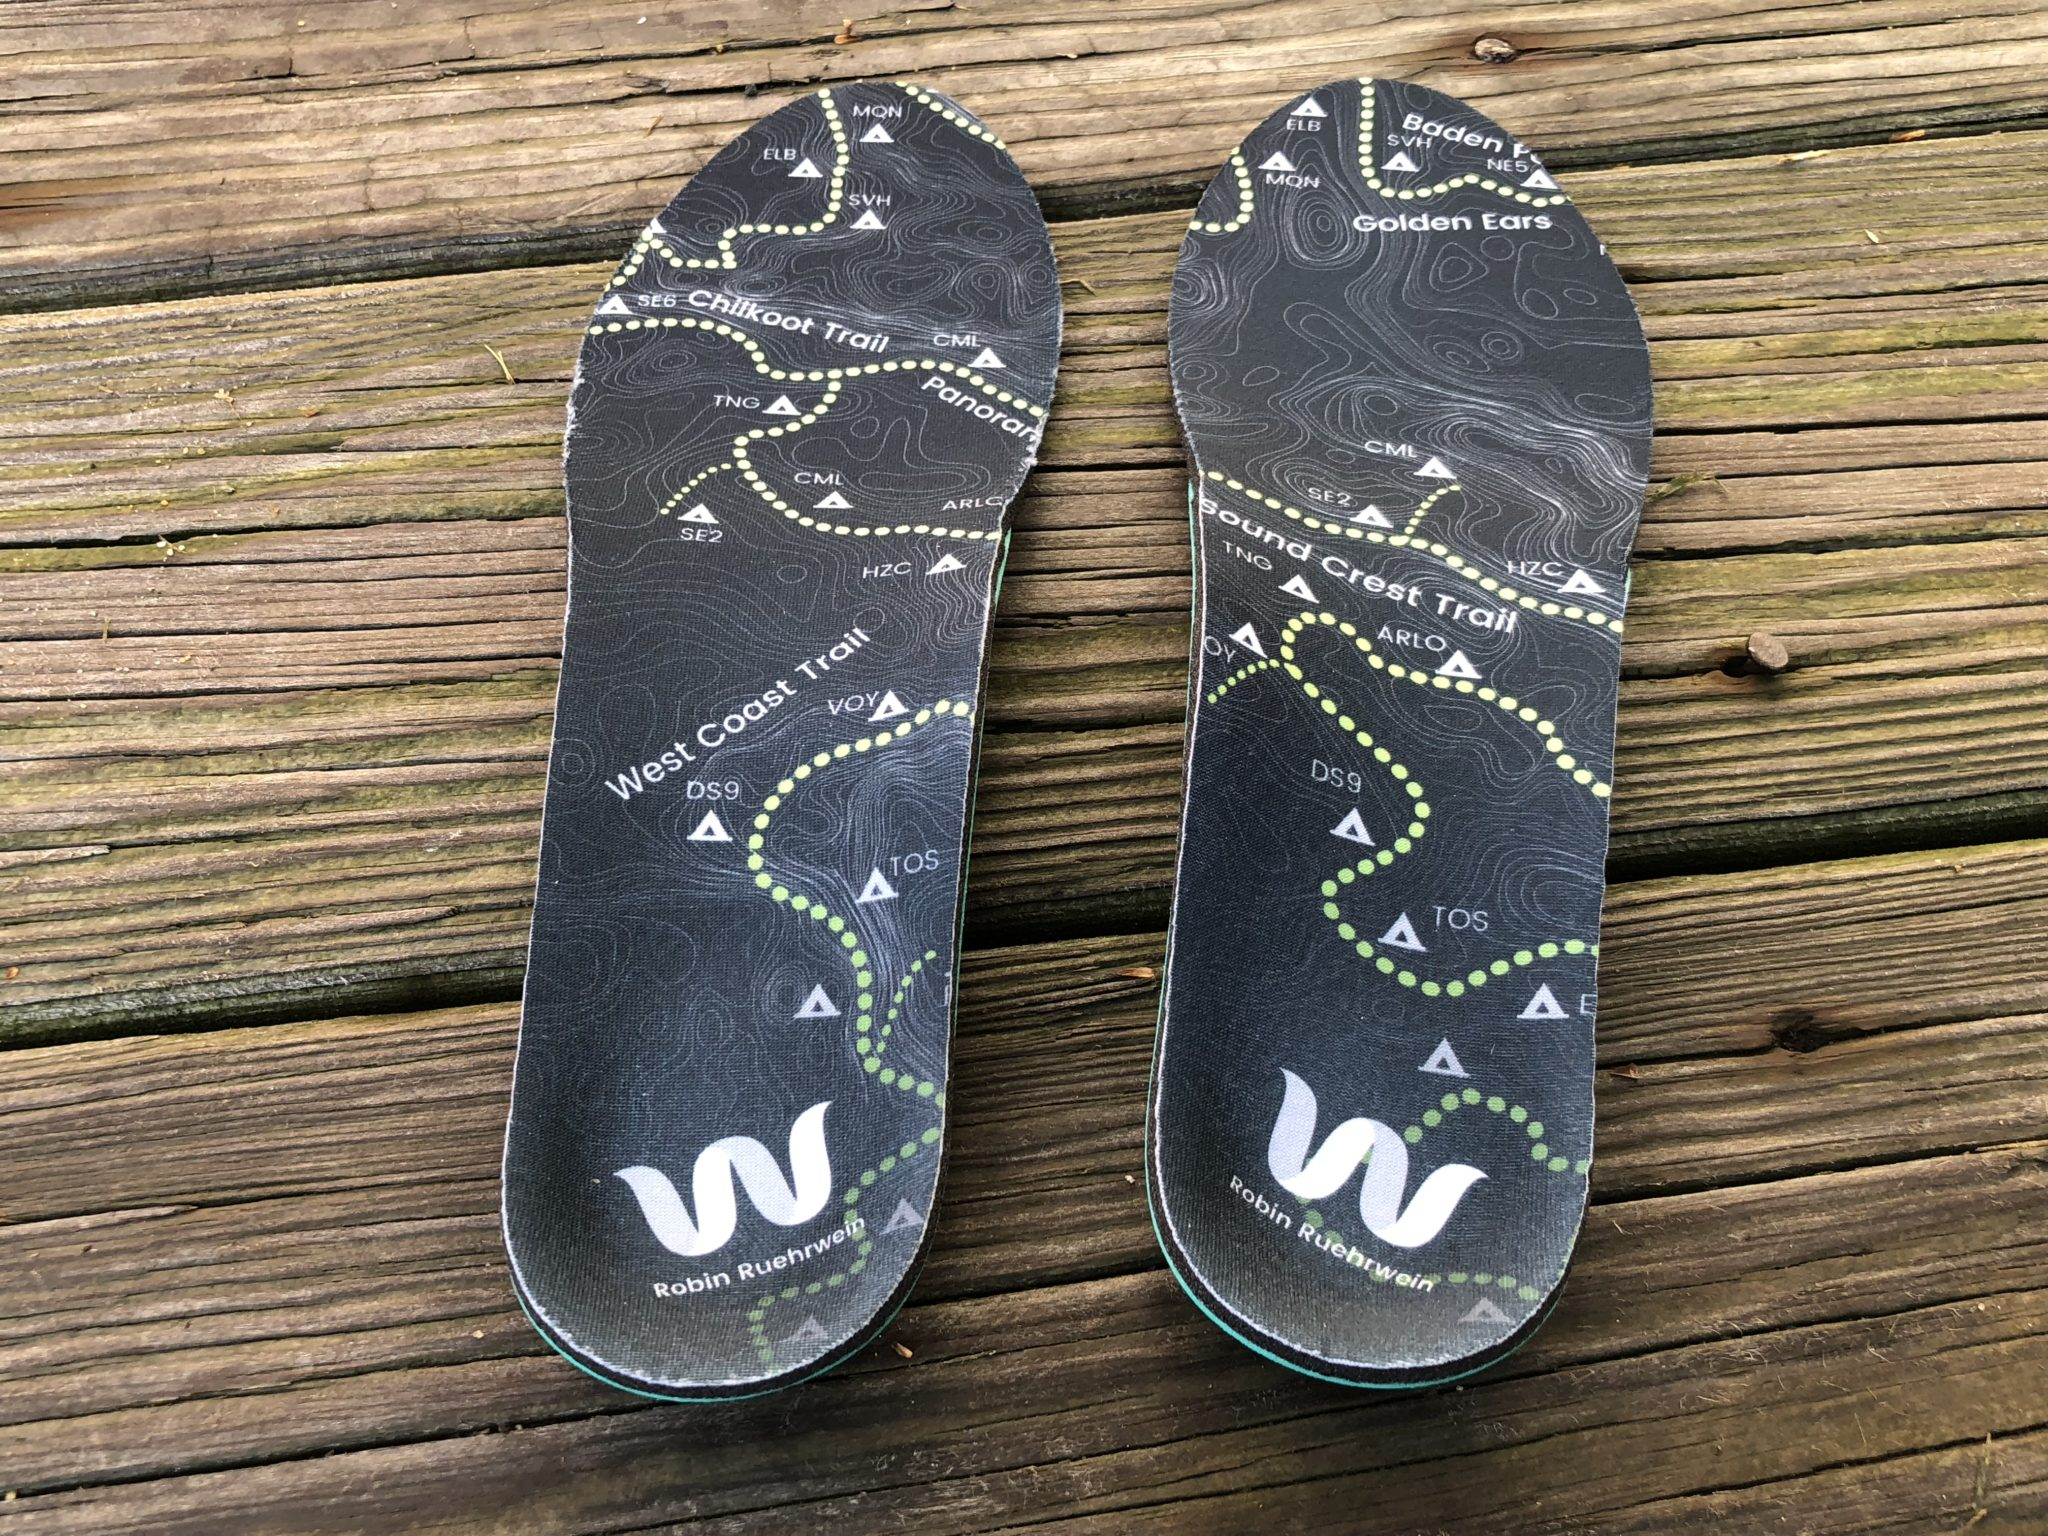 Wiivv custom insoles distribute pressure and loading across the entire foot, reduce ankle rotation and keep you aligned from the ground up!